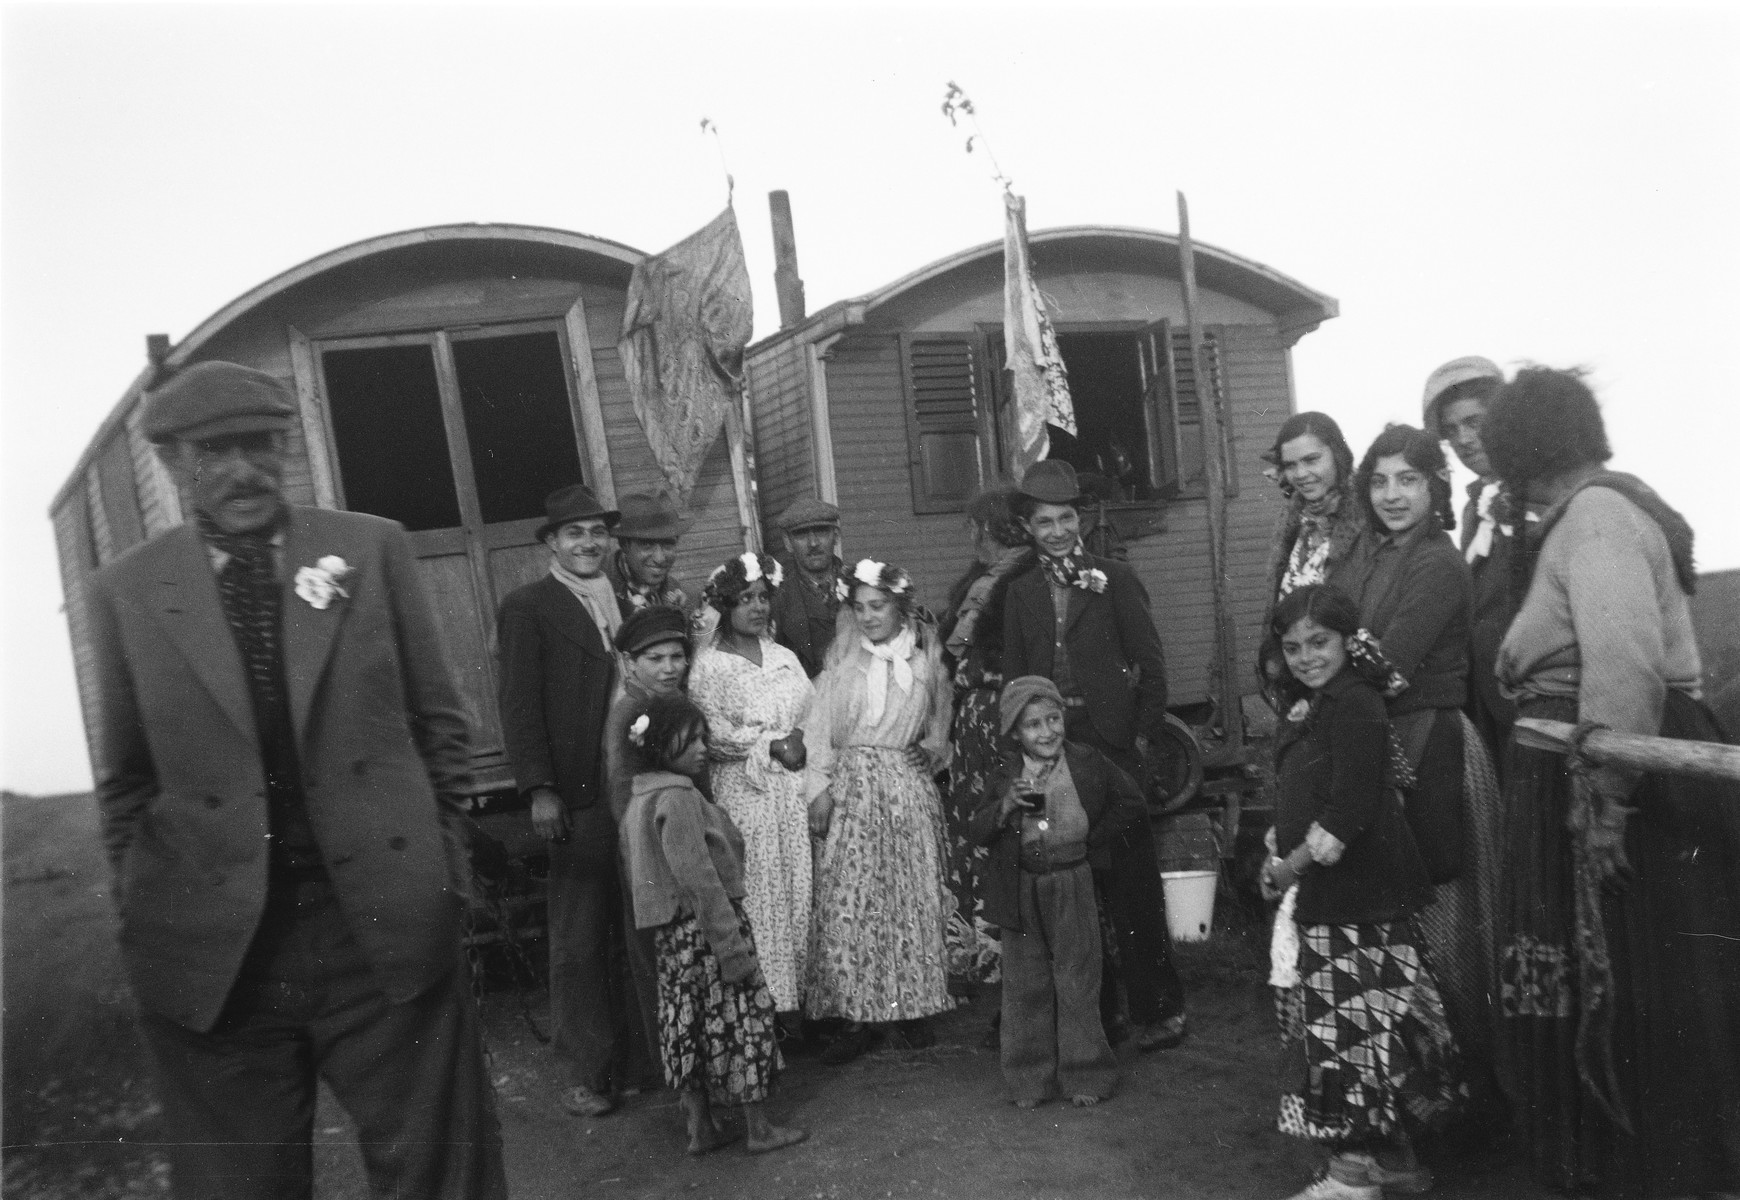 Romani (Gypsy) wedding party poses in front of two caravans.